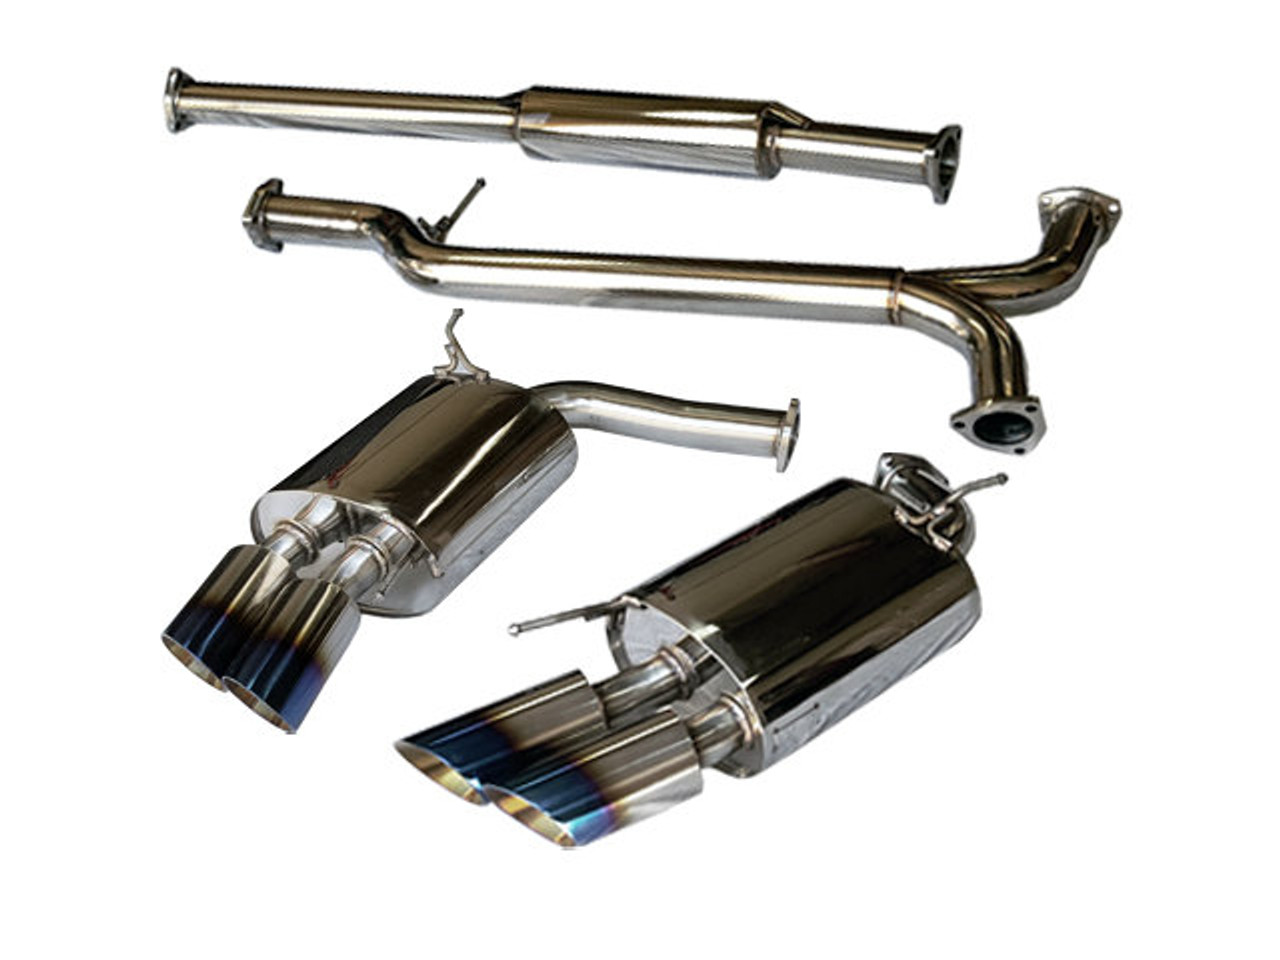 free shipping on tsudo acura 2007 08 tl type s dual se muffler rh semotors com 2006 Acura TL Type S 2012 Acura TL Stanced